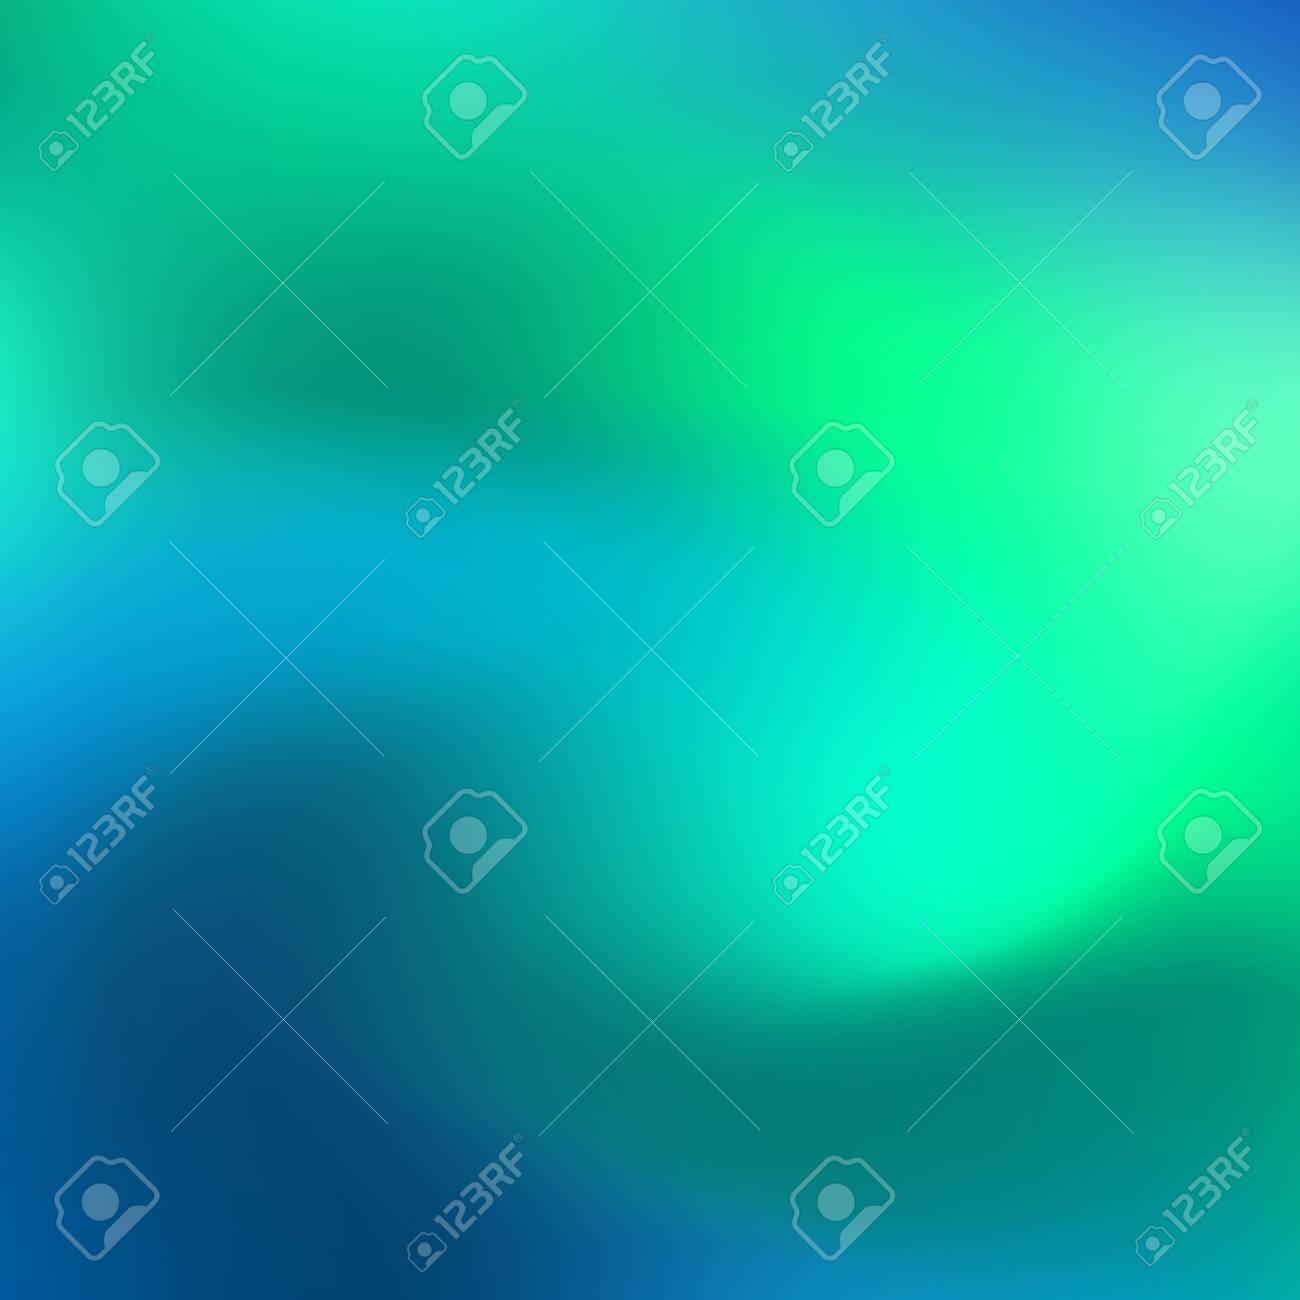 Holographic neon abstract vector background for flyers, cover, poster, banner etc. Colorful vibrant background. Blue and green neon colors. Creative design. Vector graphics - 121695421